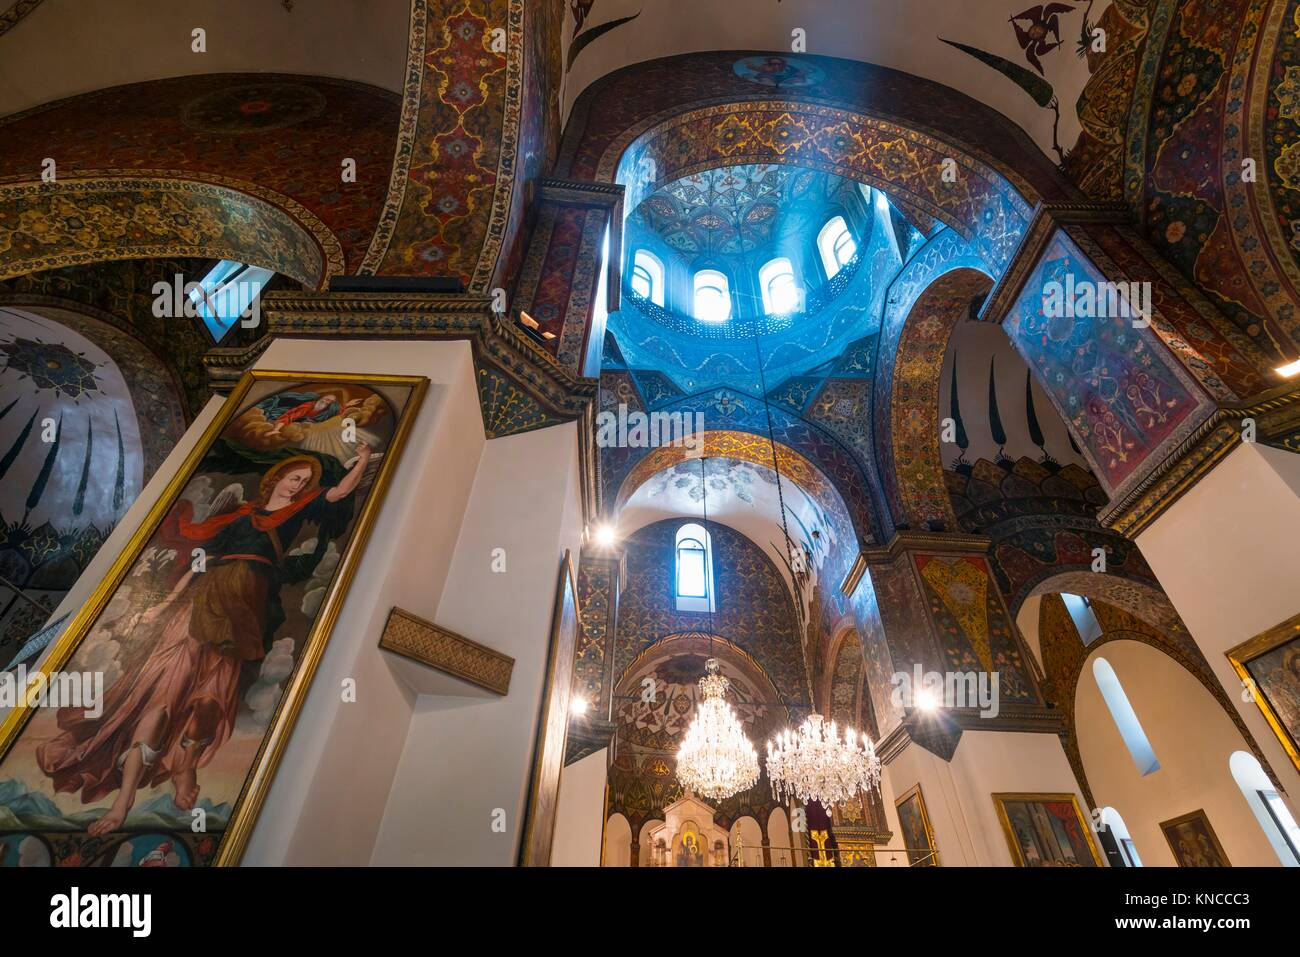 Etchmiadzin Cathedral, Etchmiadzin City, Armavir Province, Armenia, Middle East. - Stock Image